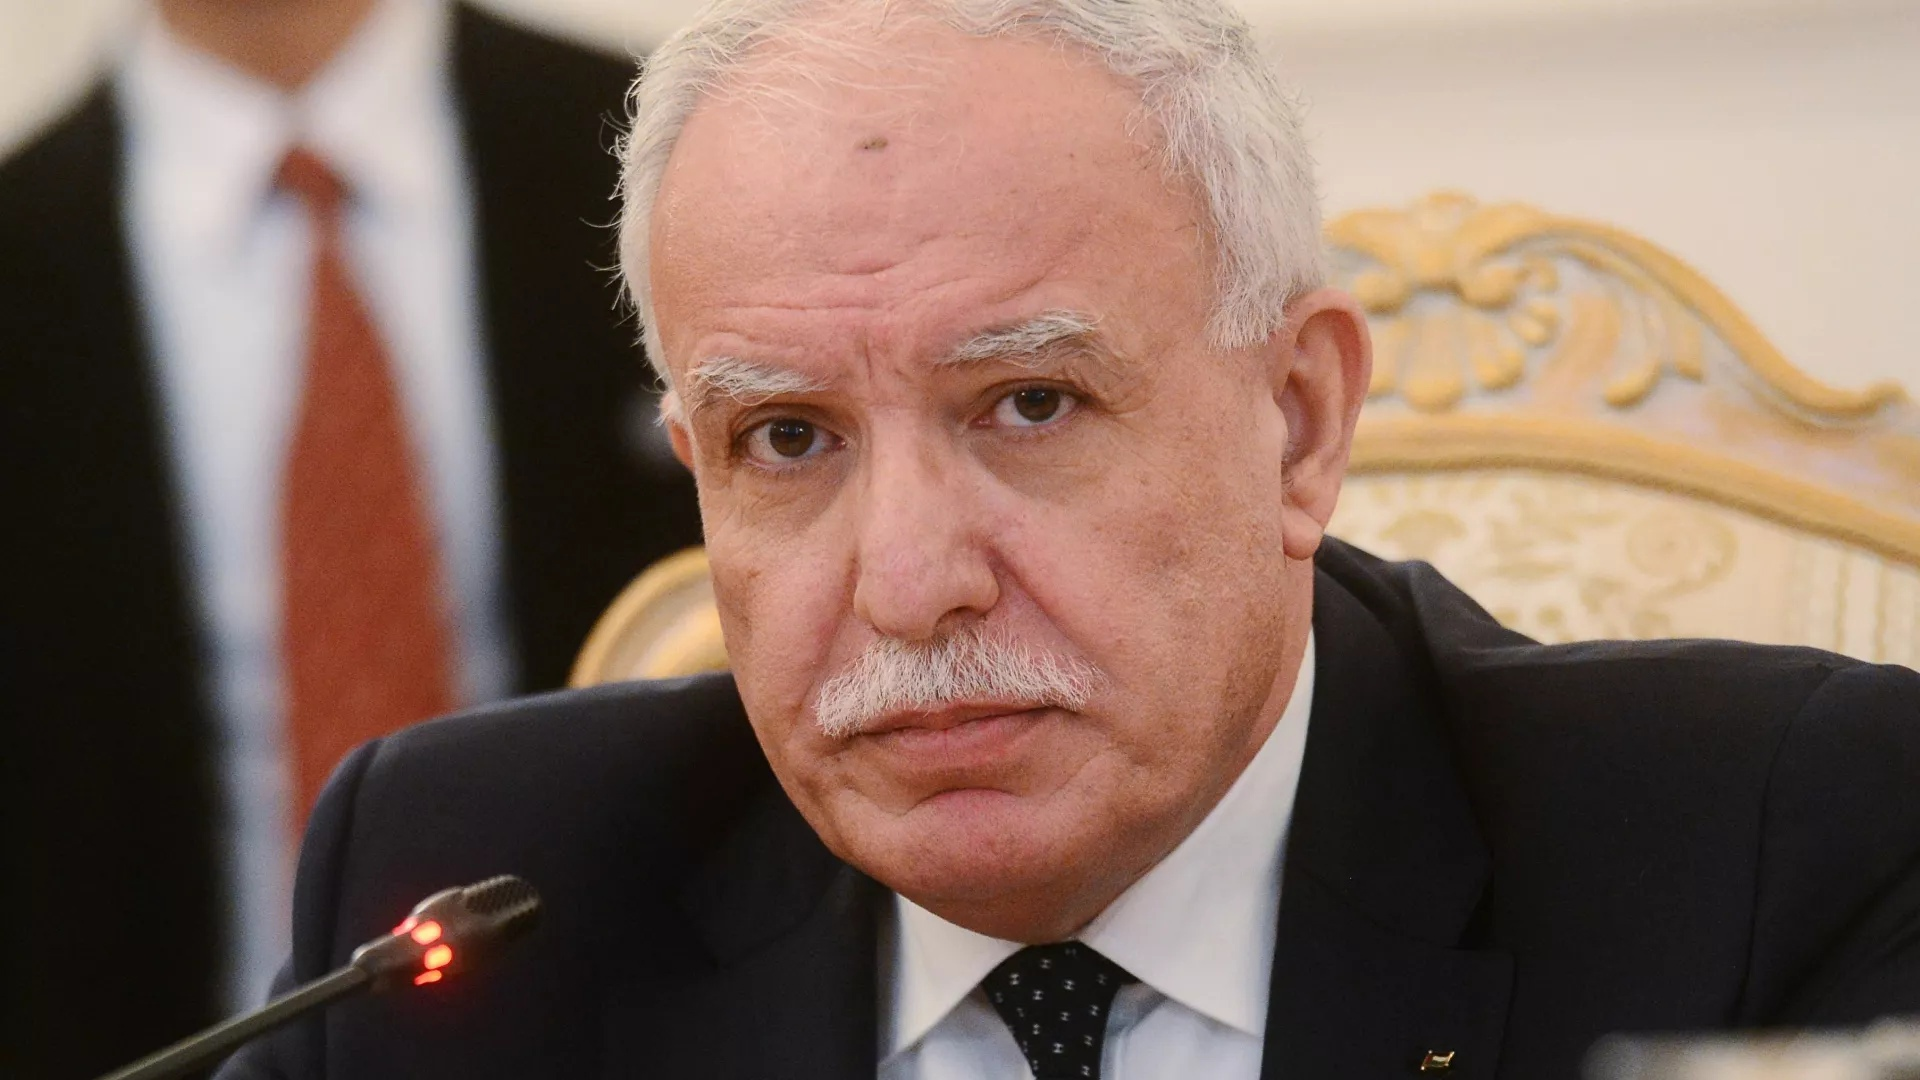 Palestinian Foreign Minister said he brought Putin a letter from Abbas